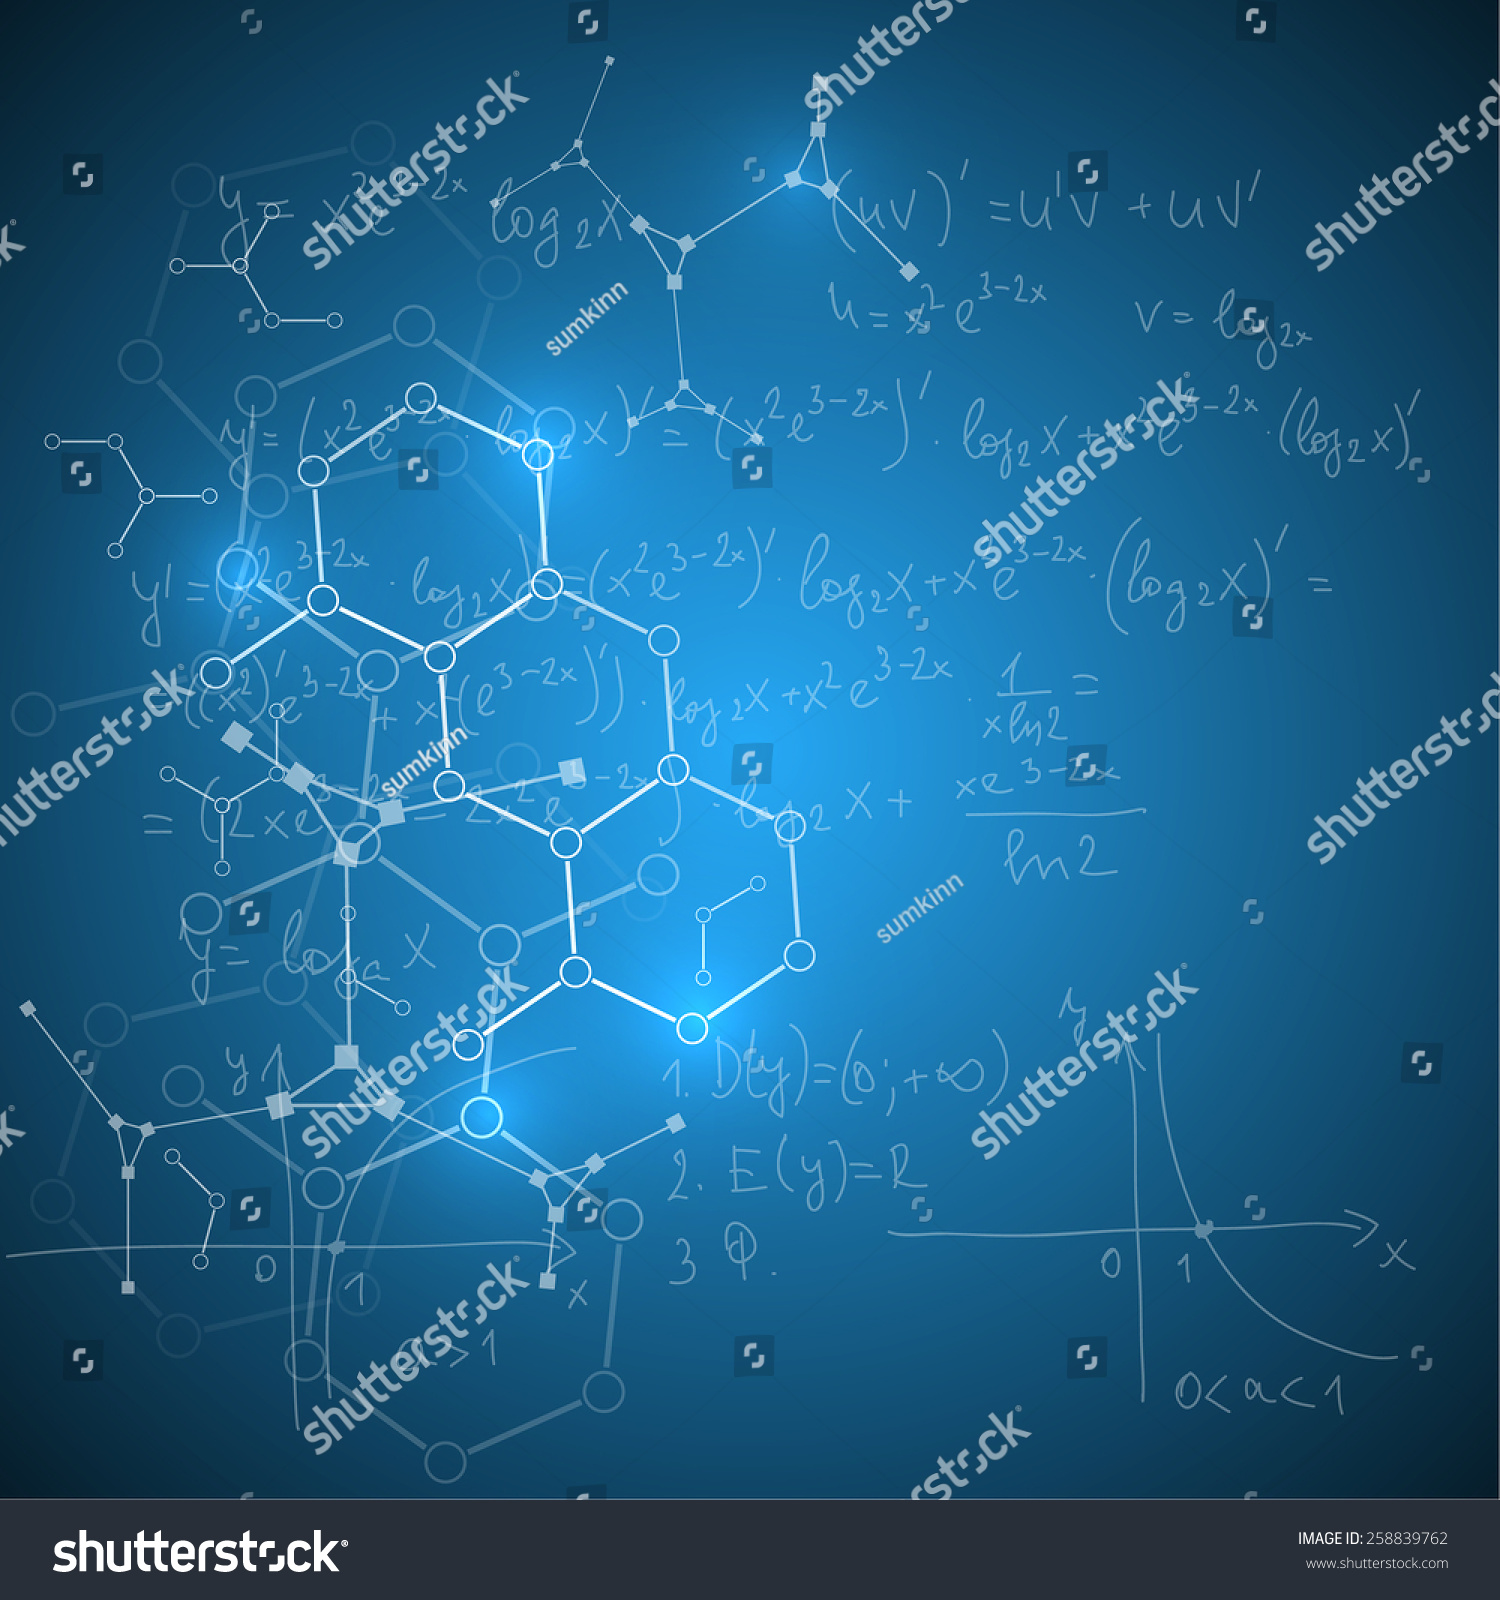 Abstract Background Mathematical Formulas Calculations Graphs Stock Vector